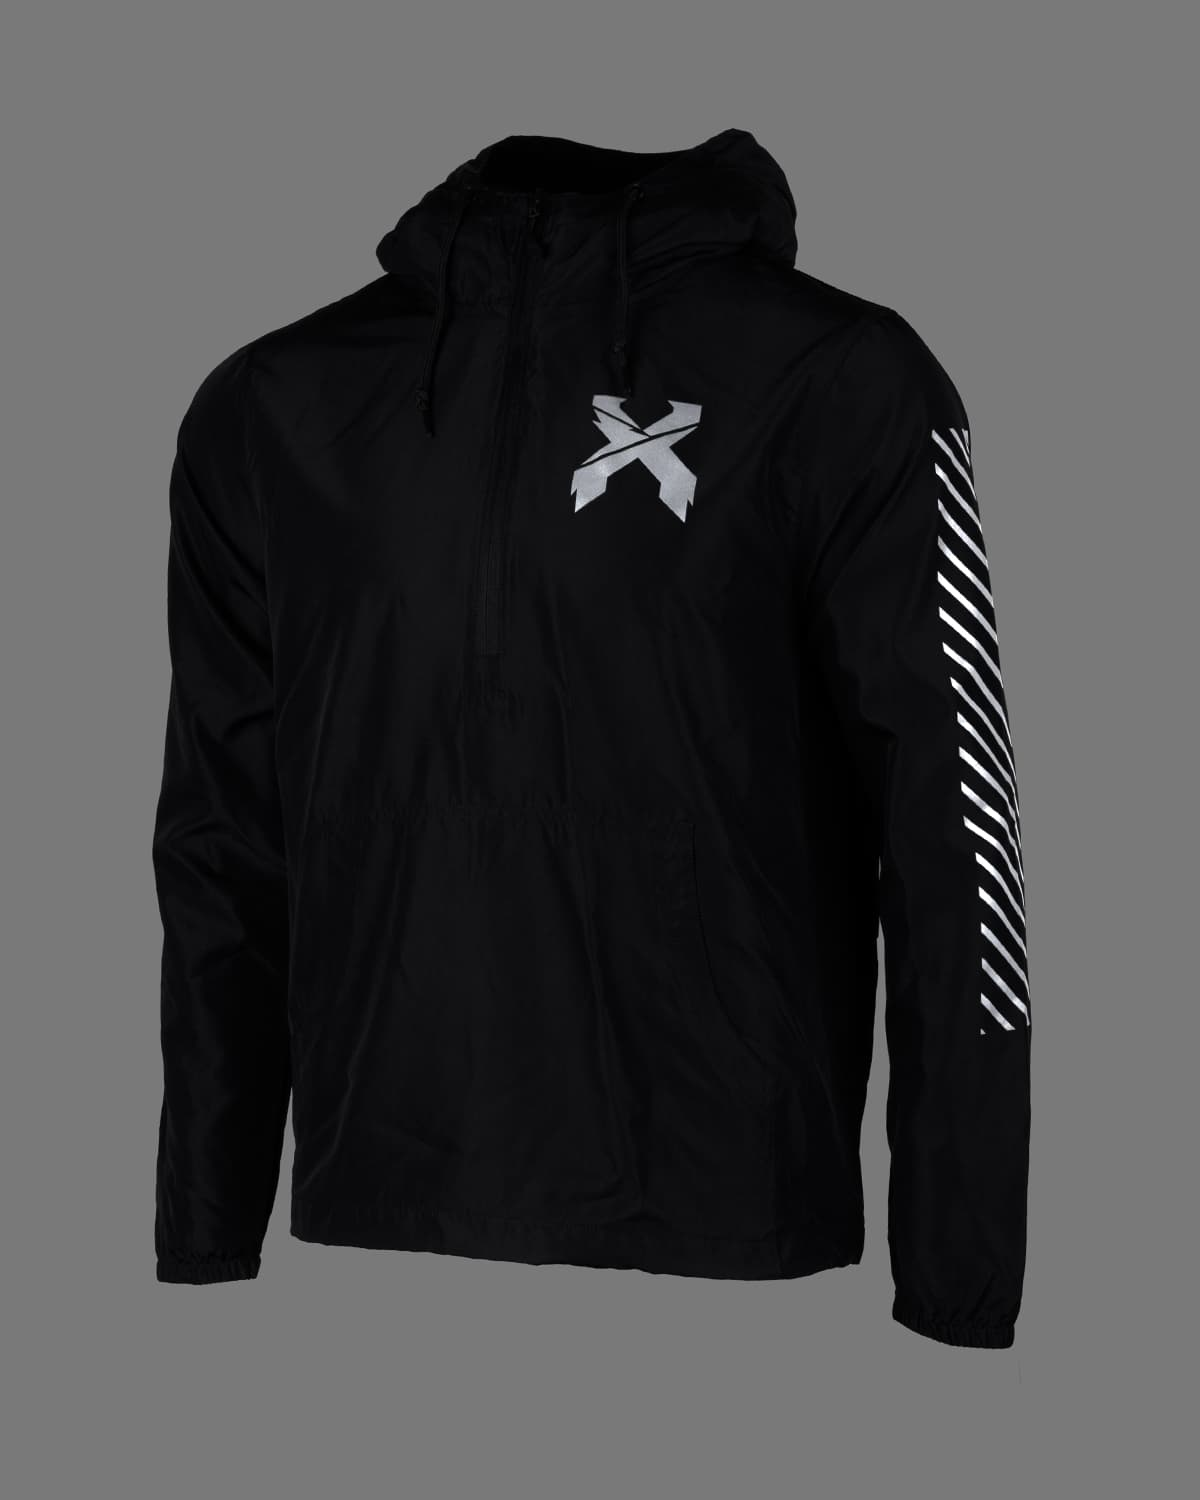 Excision 'Sliced' Logo Reflective Lightweight Pullover Anorak Jacket